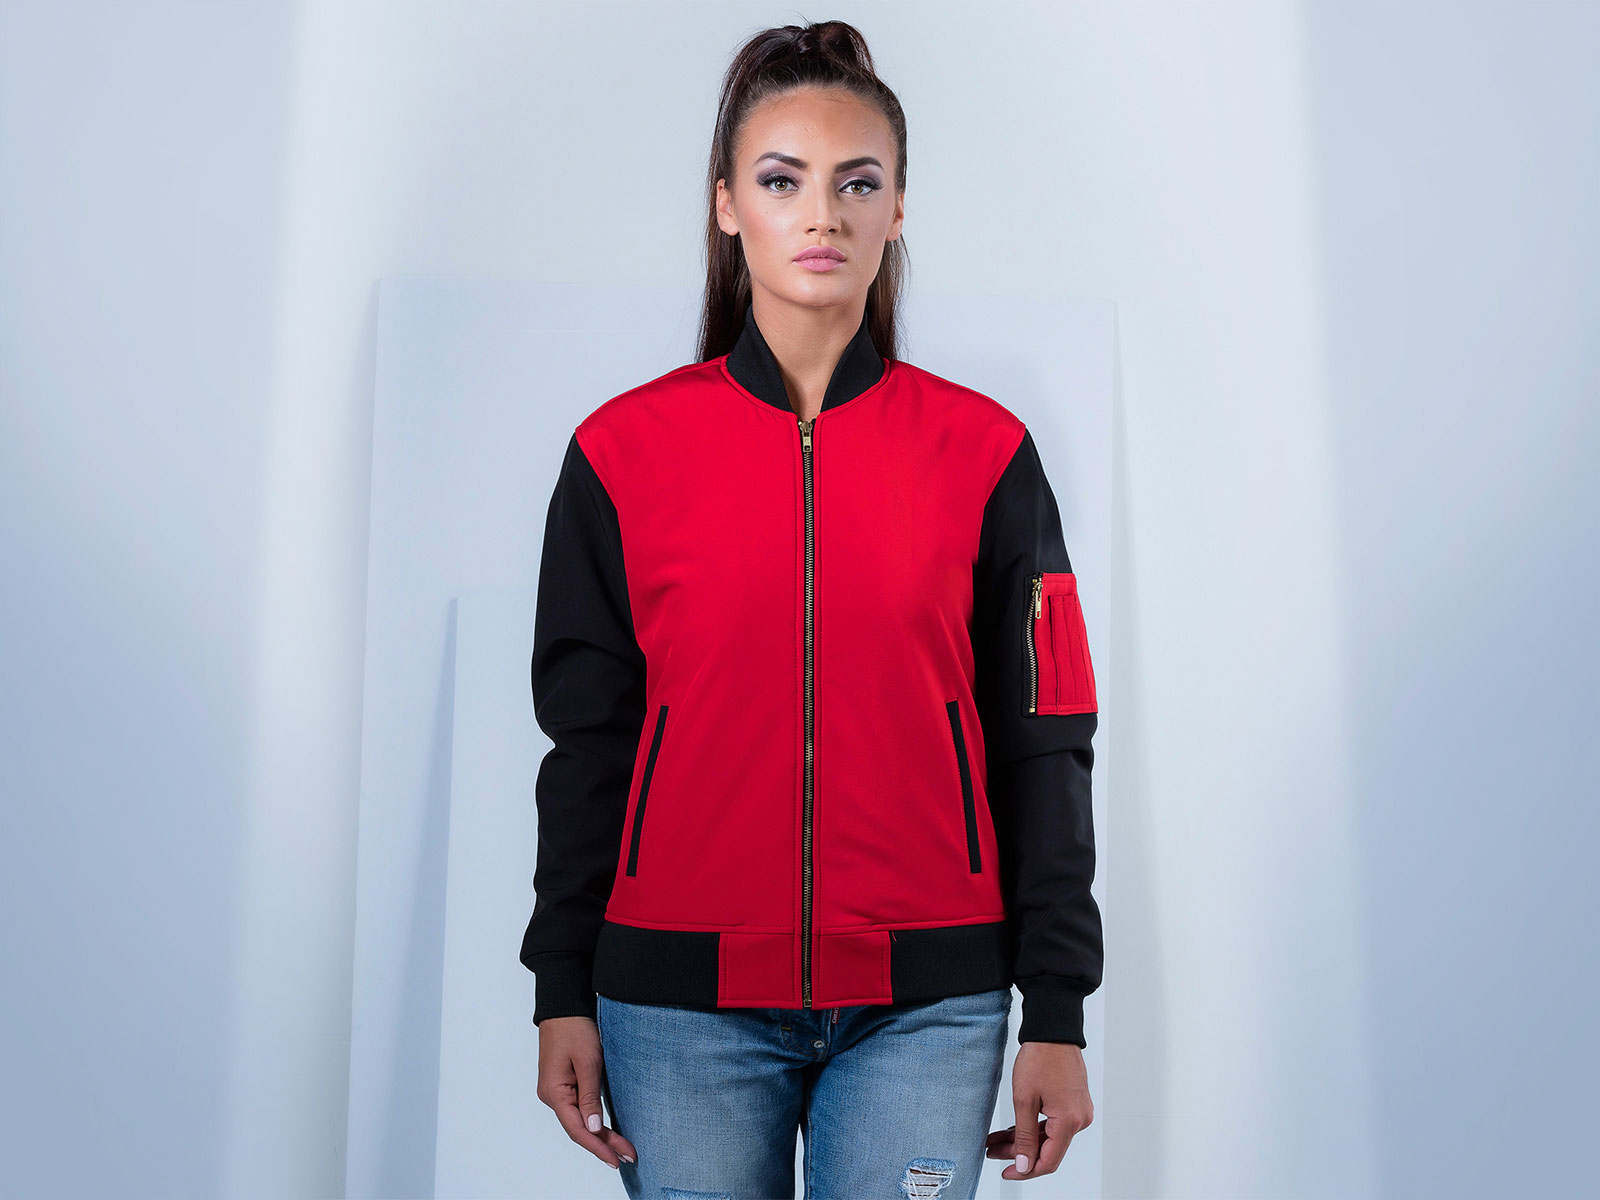 Women SoftShell Bomber Jacket in Red and Black